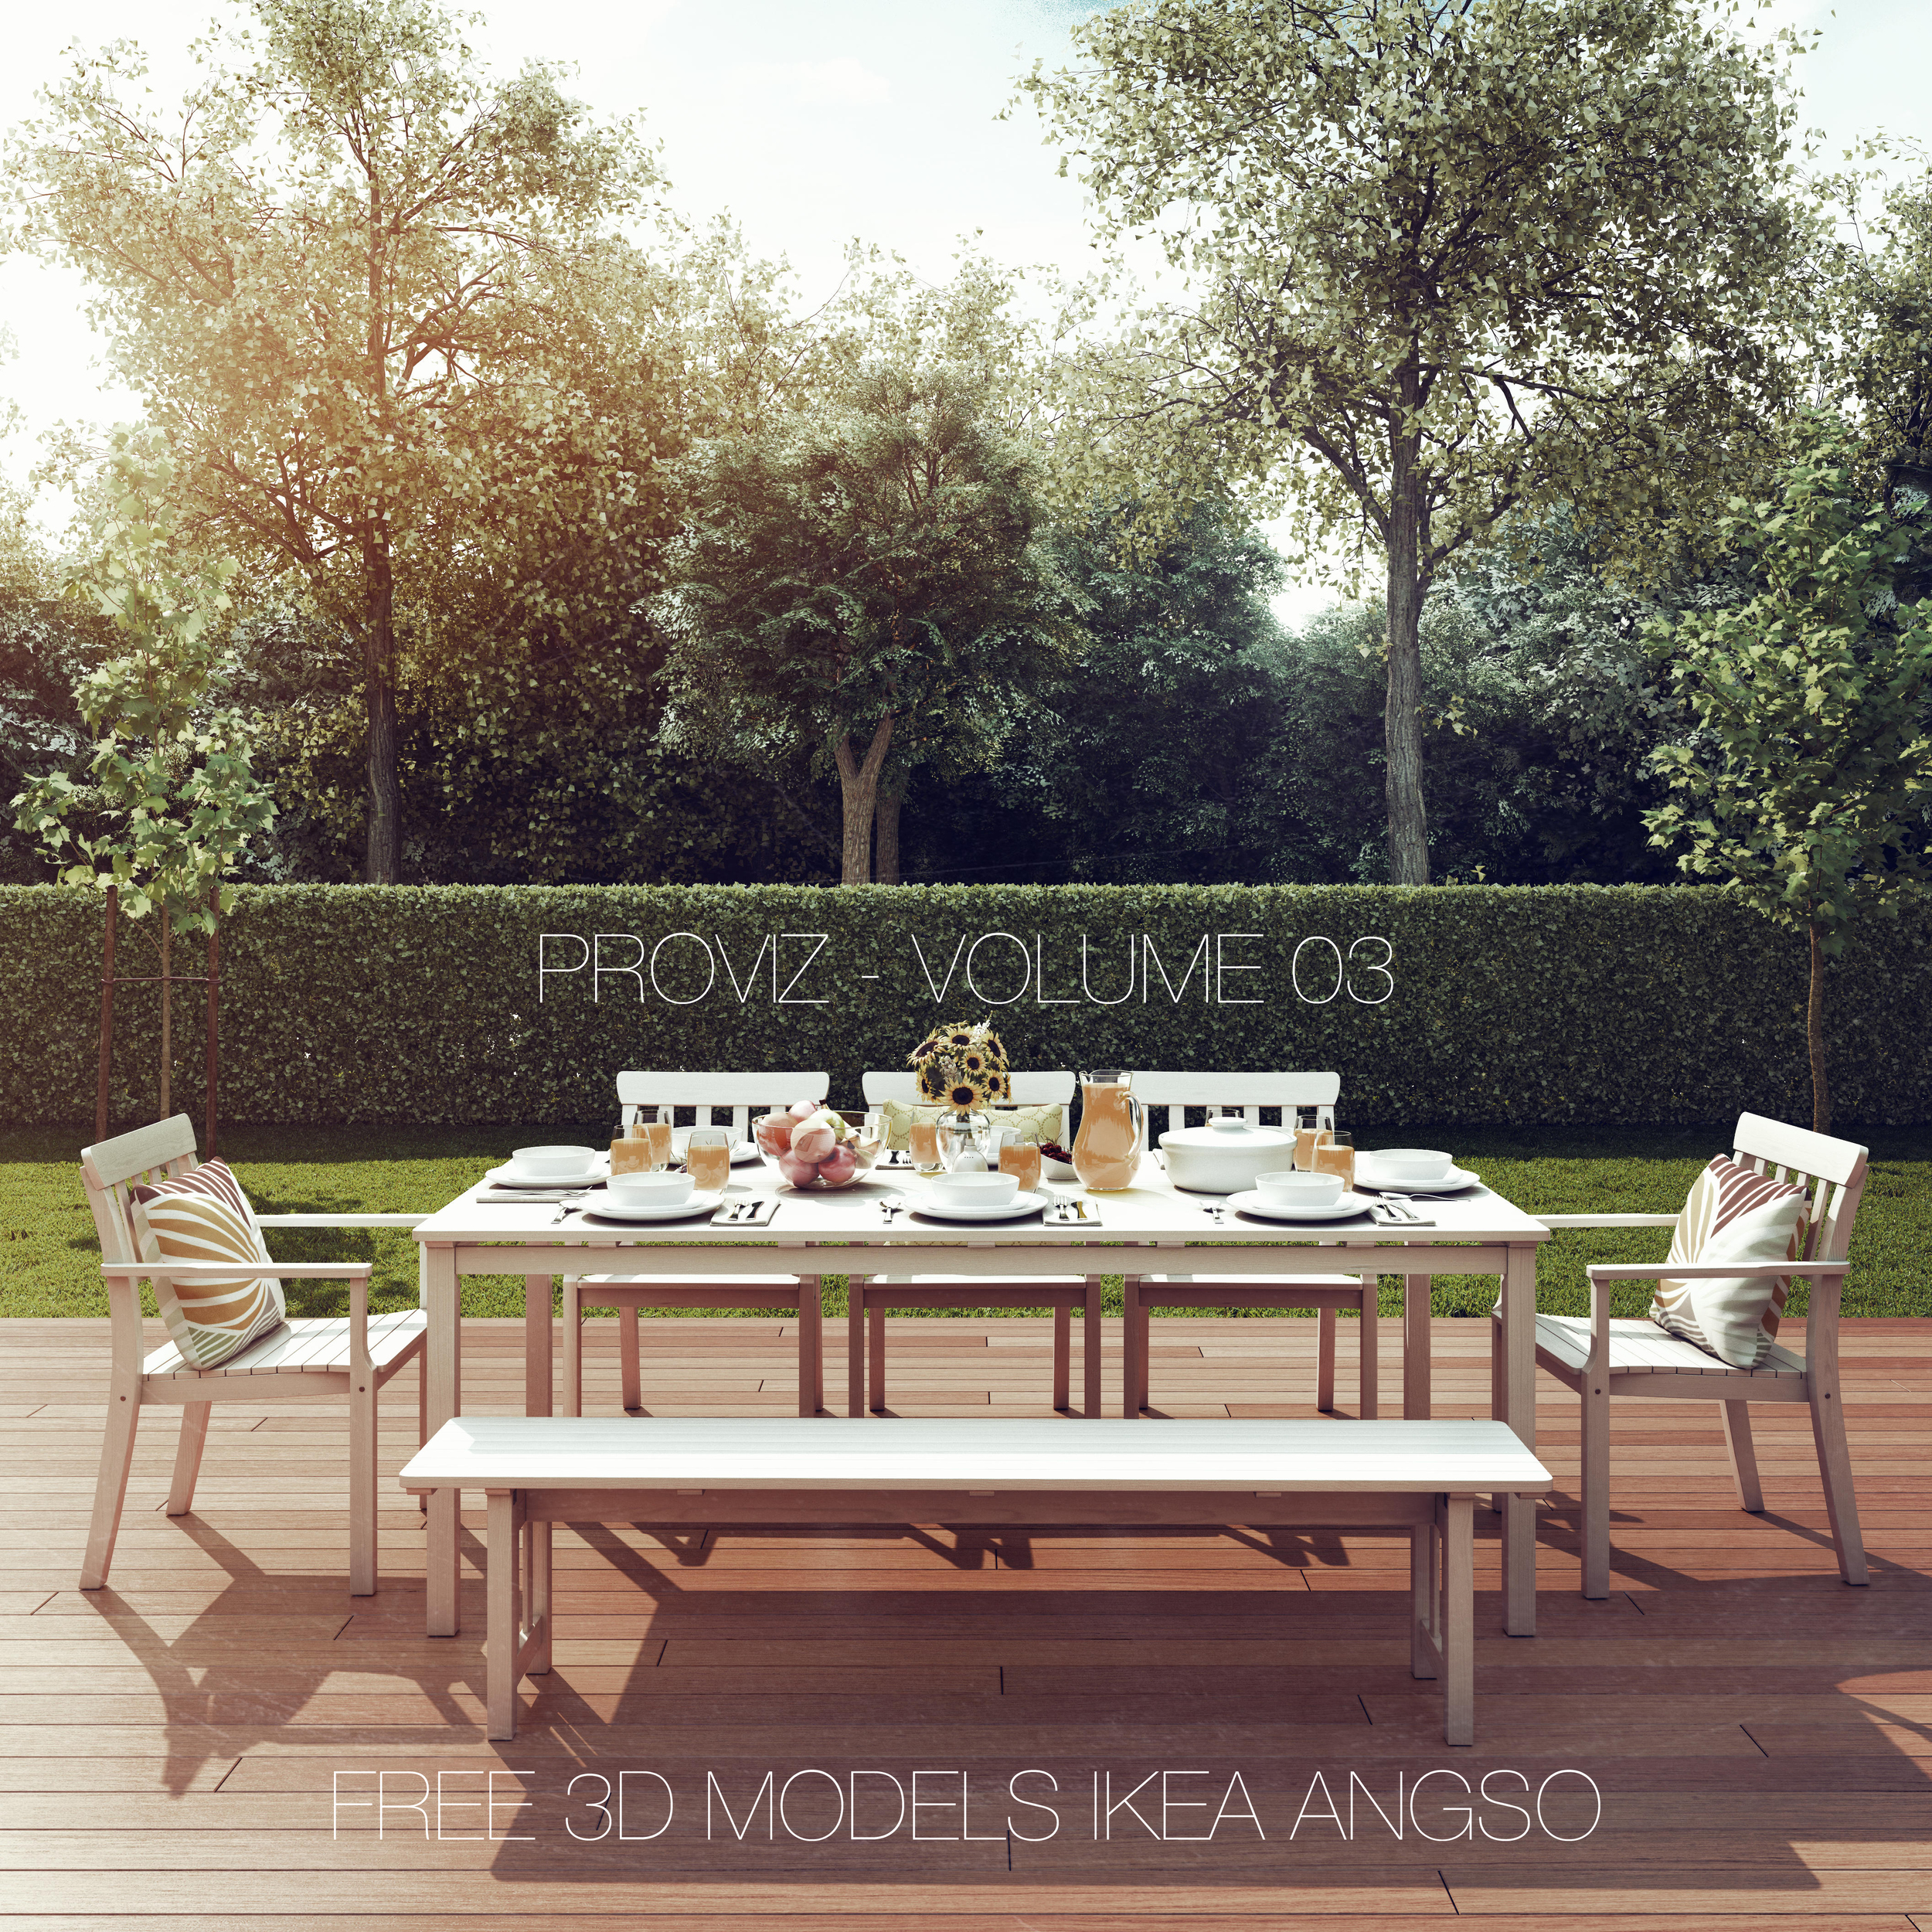 Ikea Outdoor Furniture Free 3d Models Ikea Angso Outdoor Furniture Series Proviz